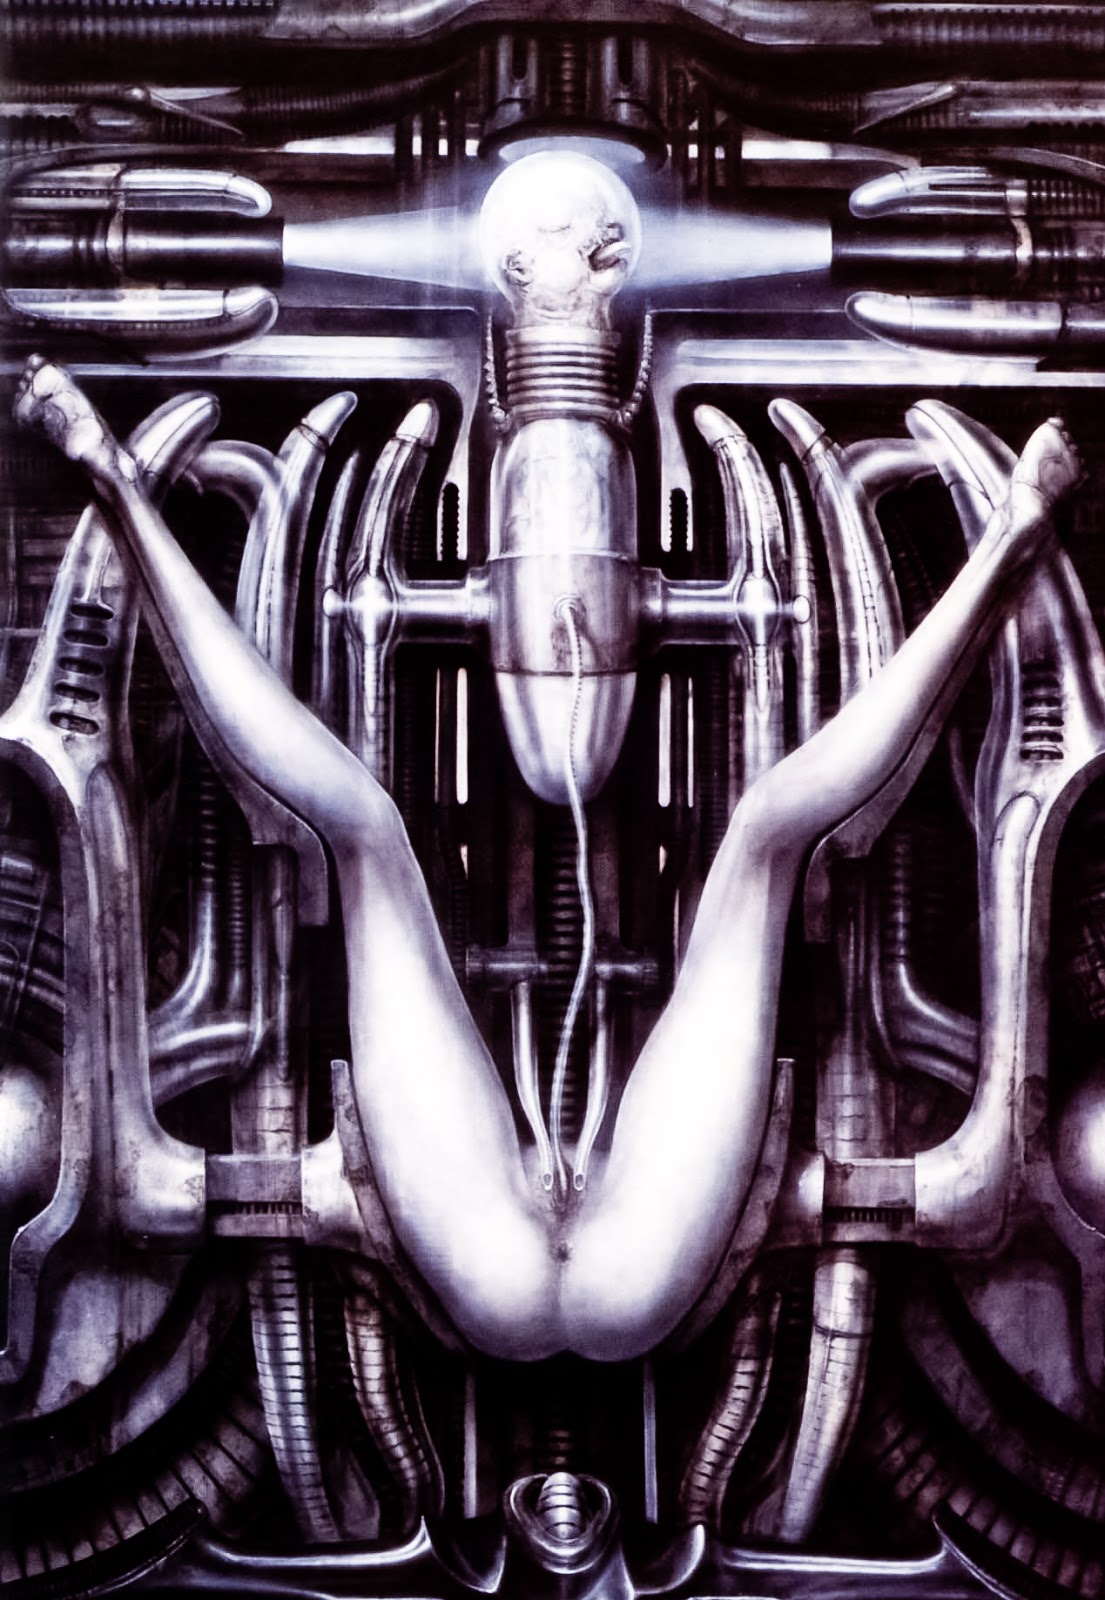 Catalina La Grande Libro Alien Explorations Giger 39s Stillbirth Machine Iii 1977